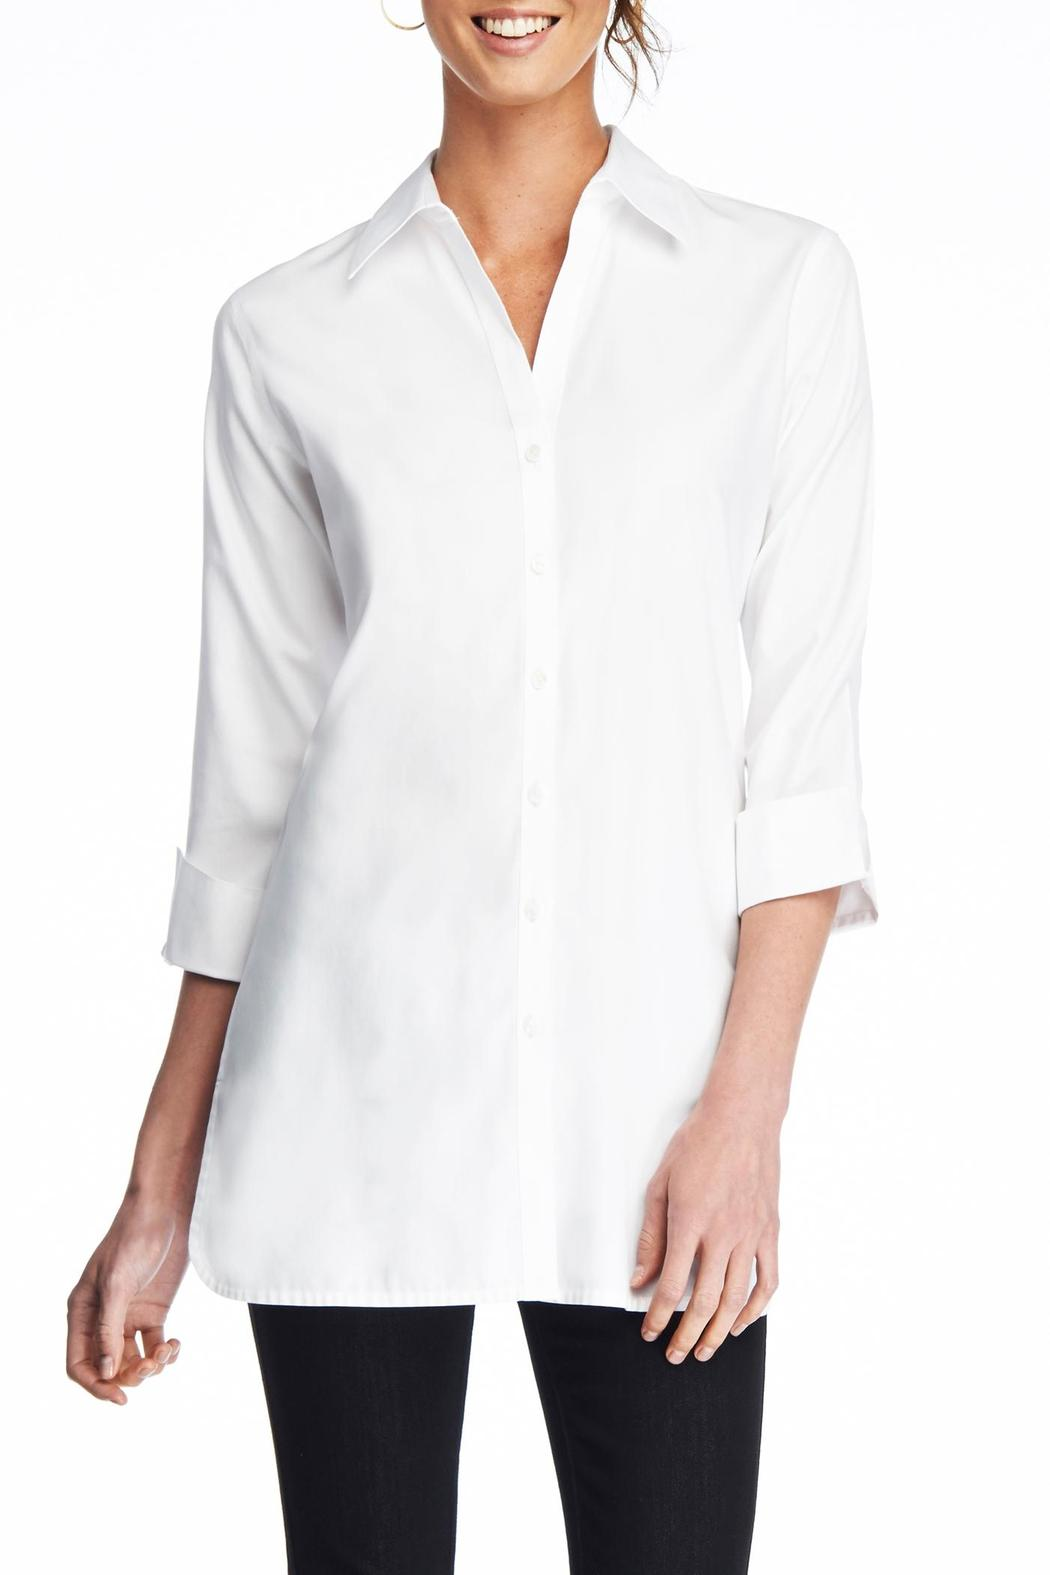 Foxcroft No Iron Shaped Blouse From New York By Jane